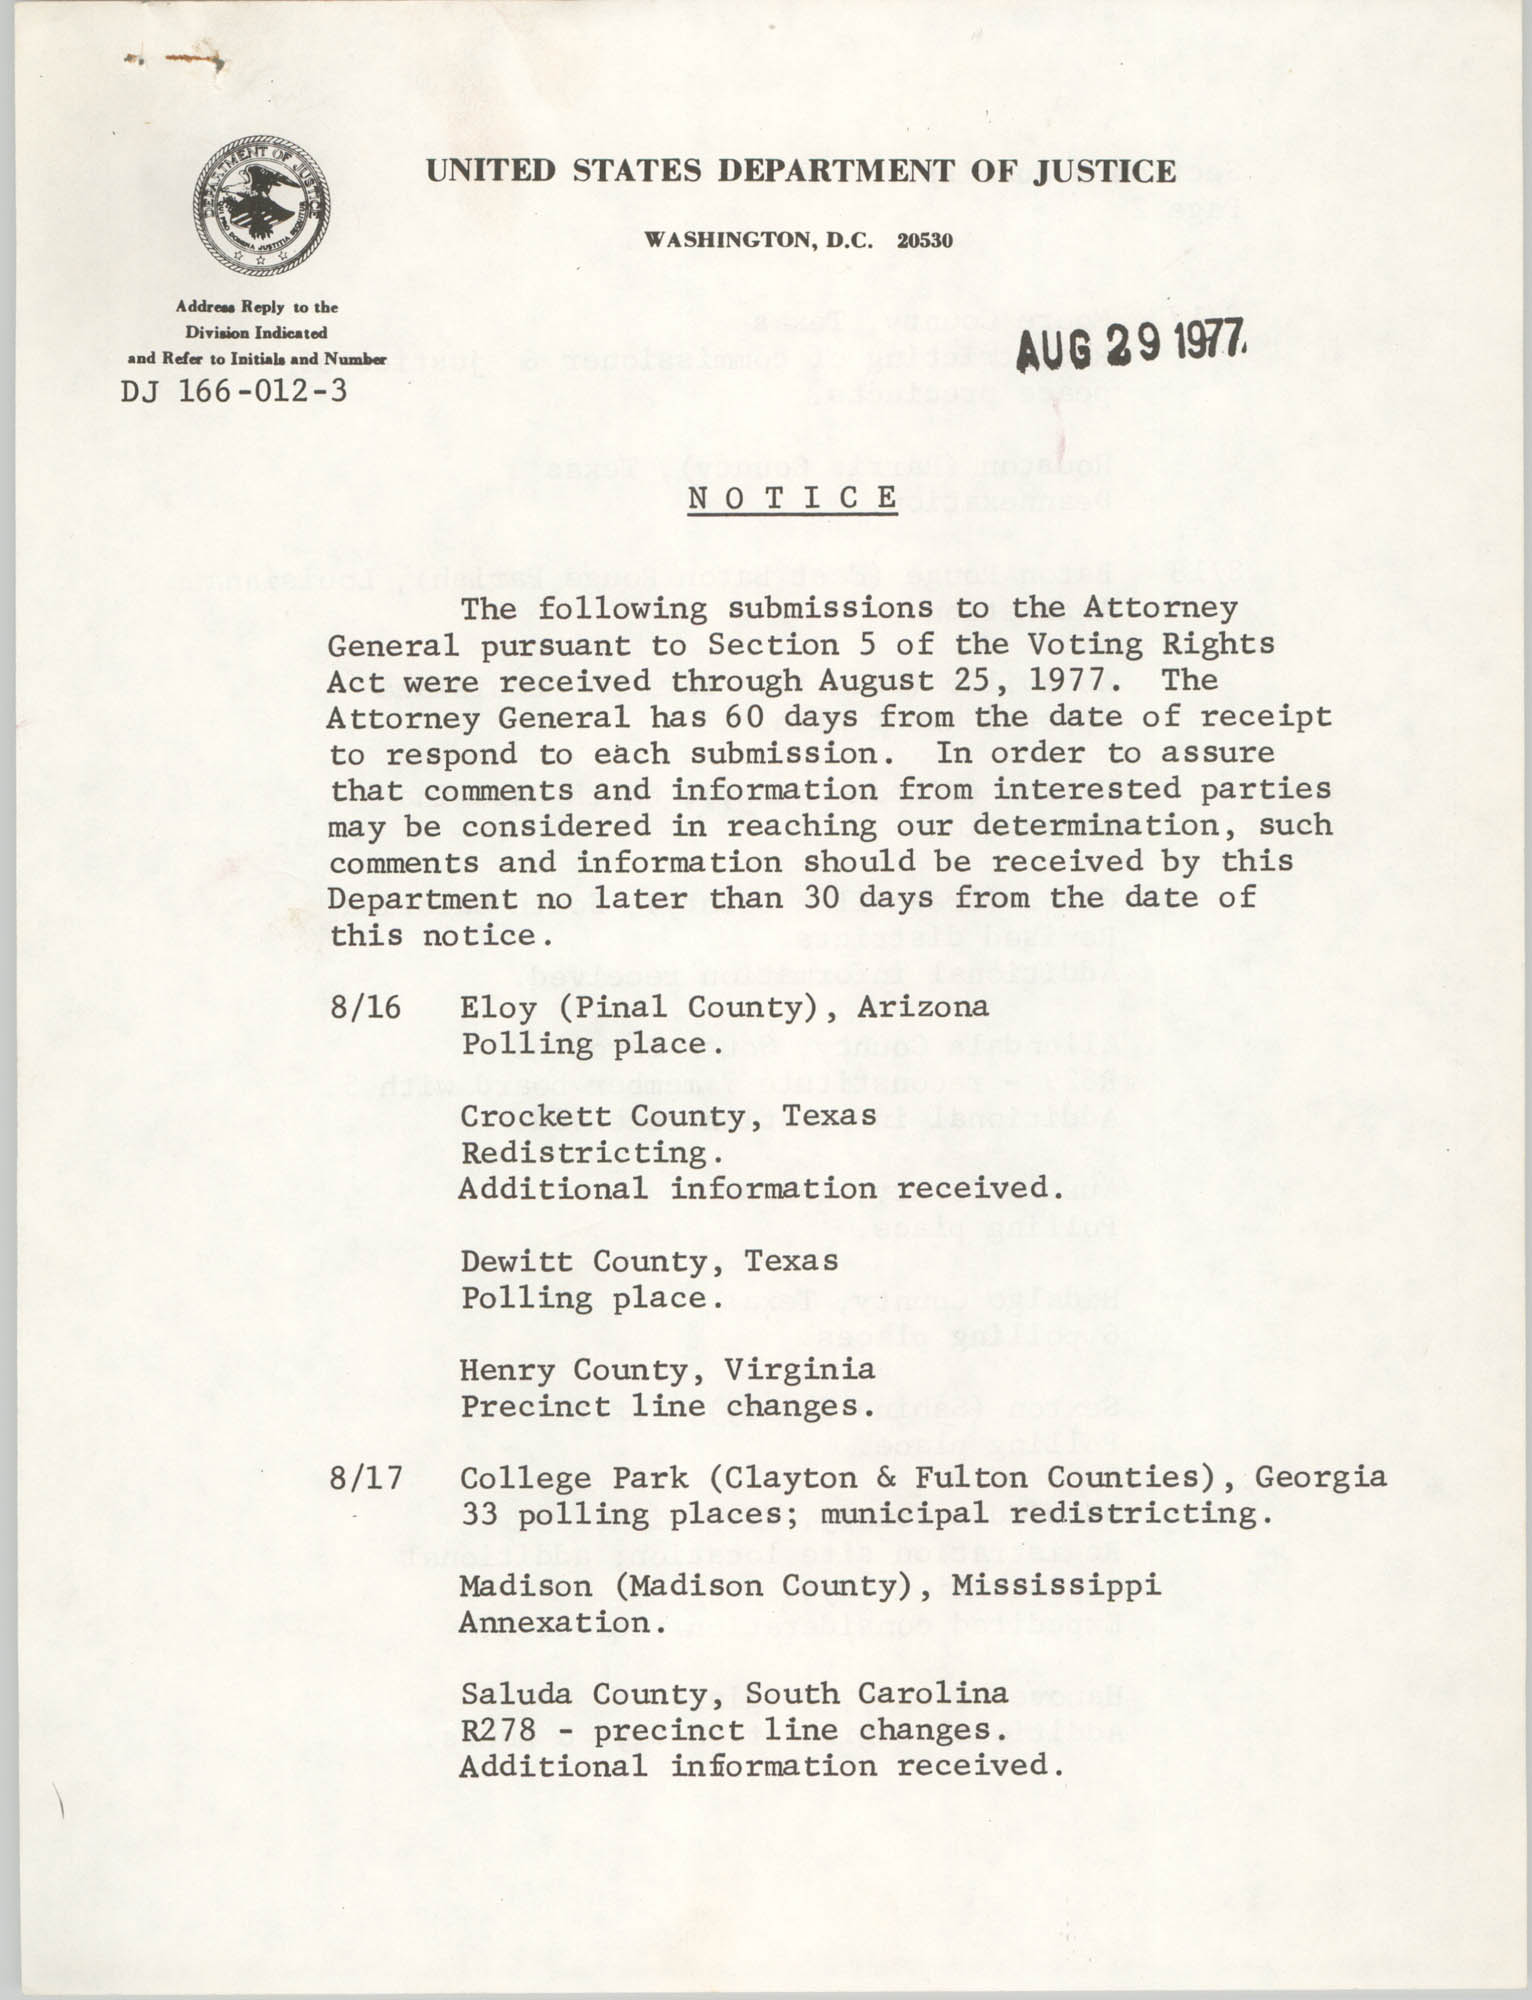 United States Department of Justice Notice, August 29, 1977